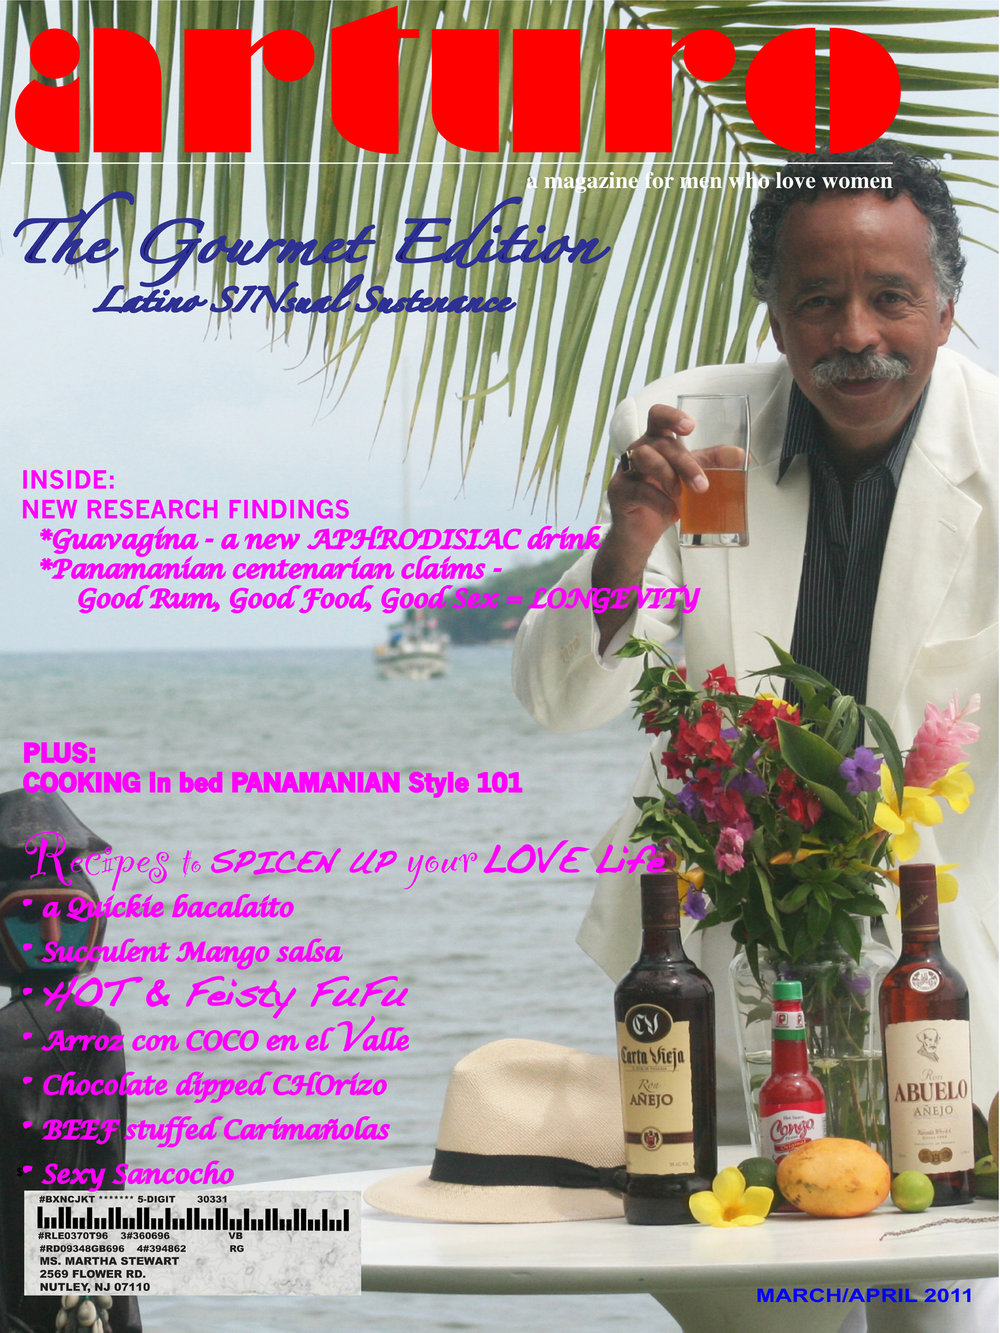 Arturo Magazine, The Gourmet Edition – Latino SINsual Sustenance